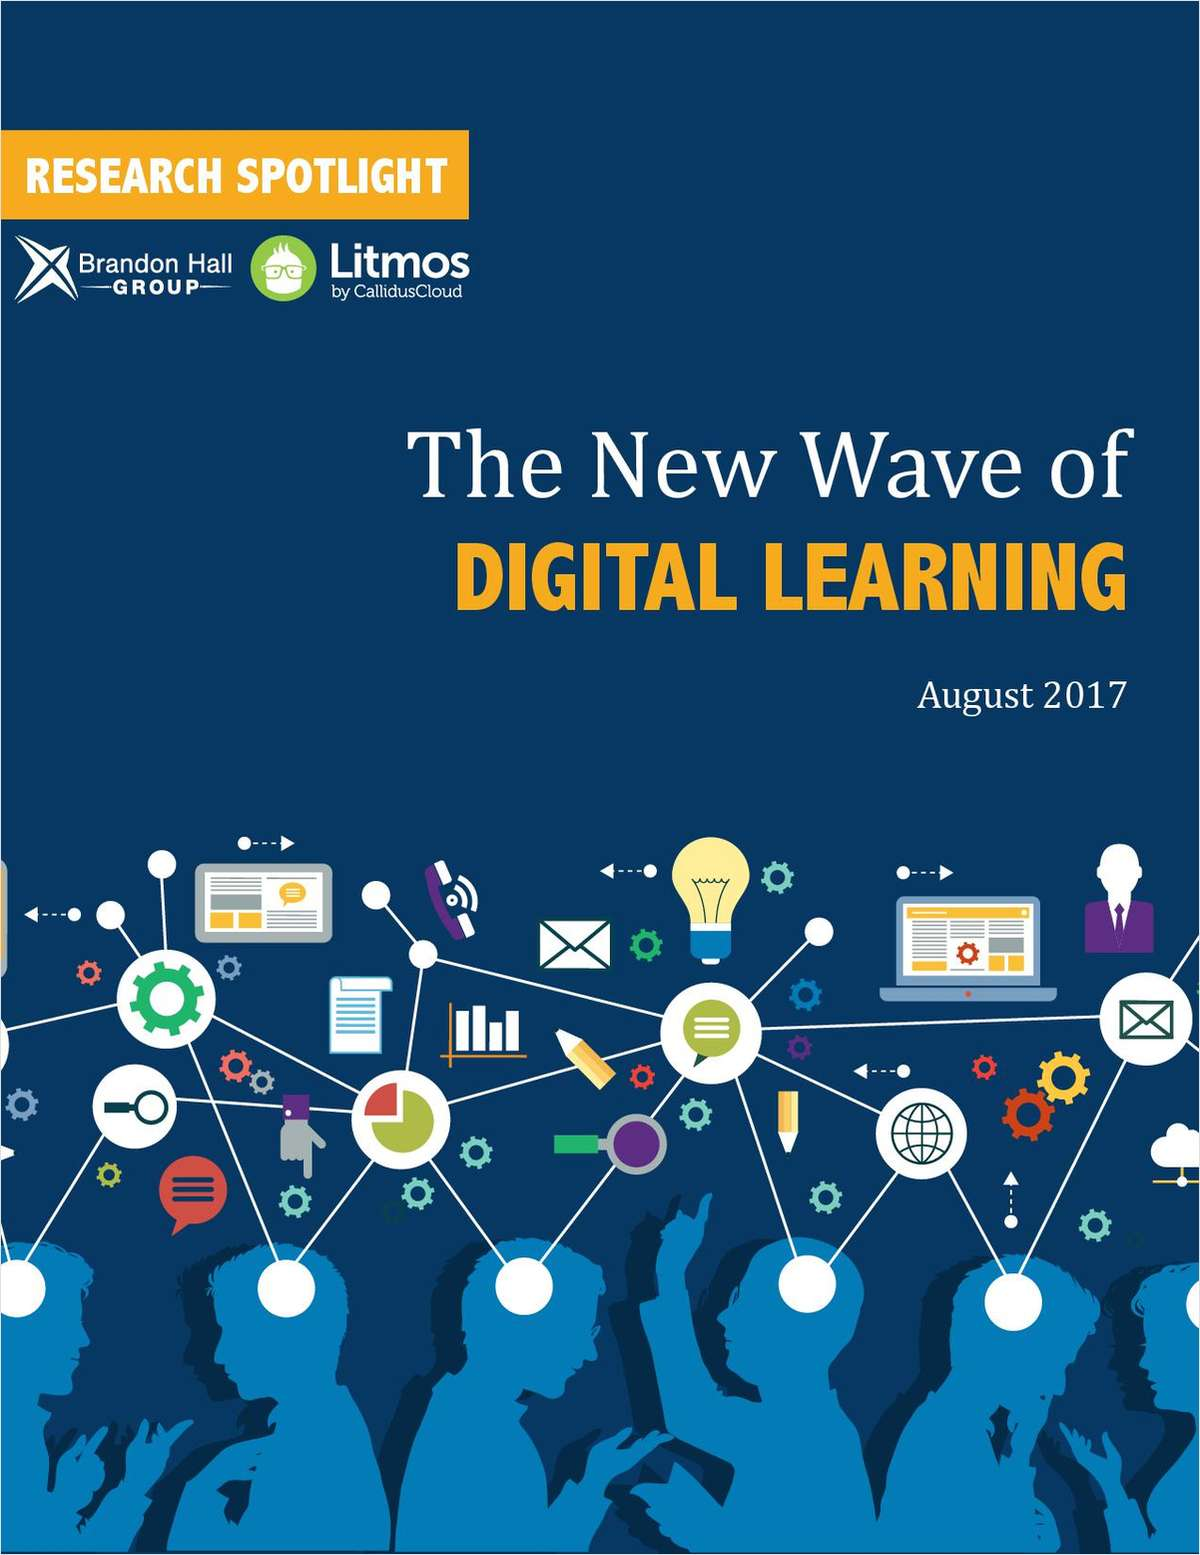 The New Wave of Digital Learning